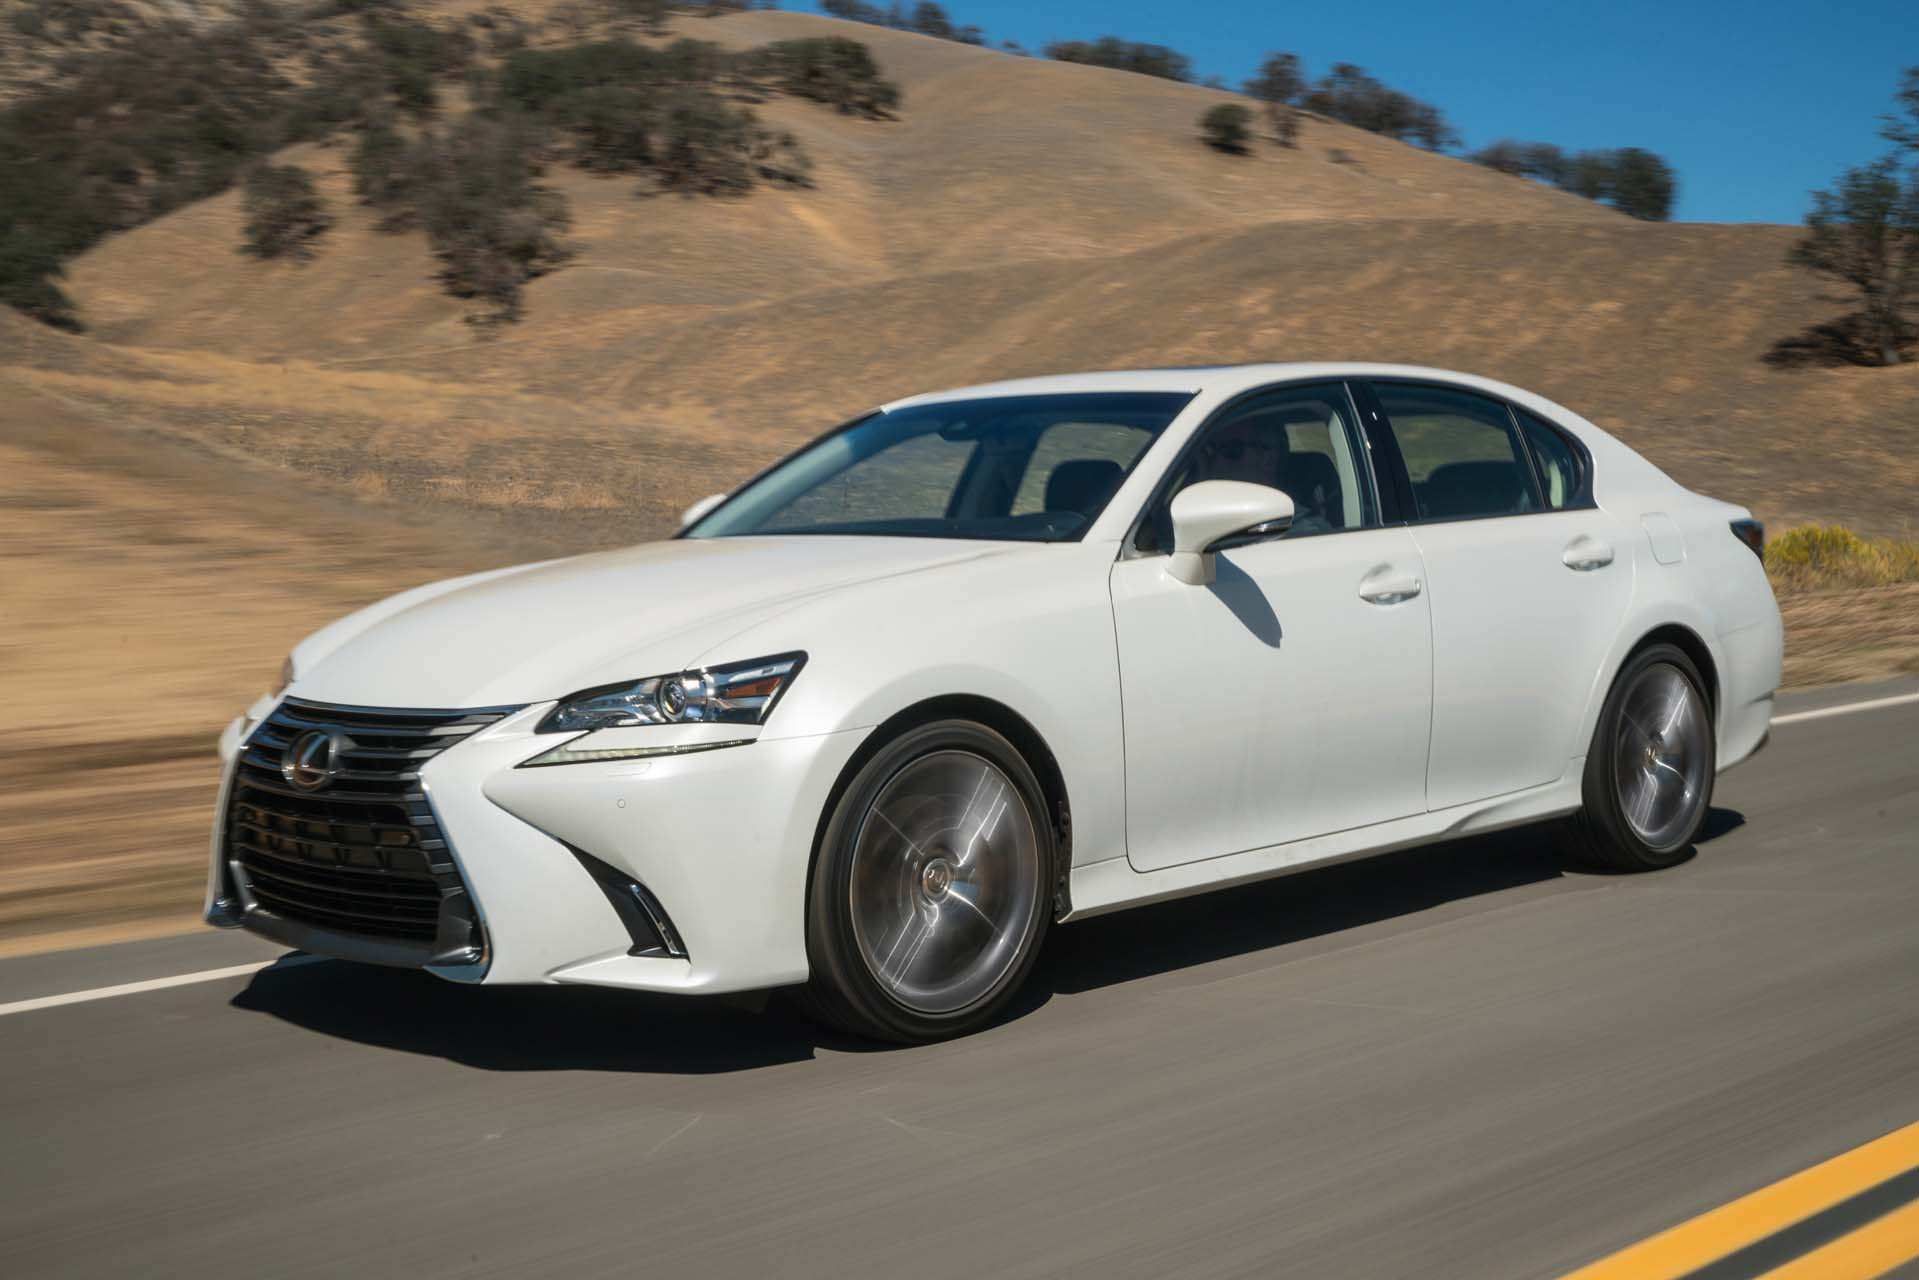 75 The Best Lexus Gs 2019 Price And Release Date